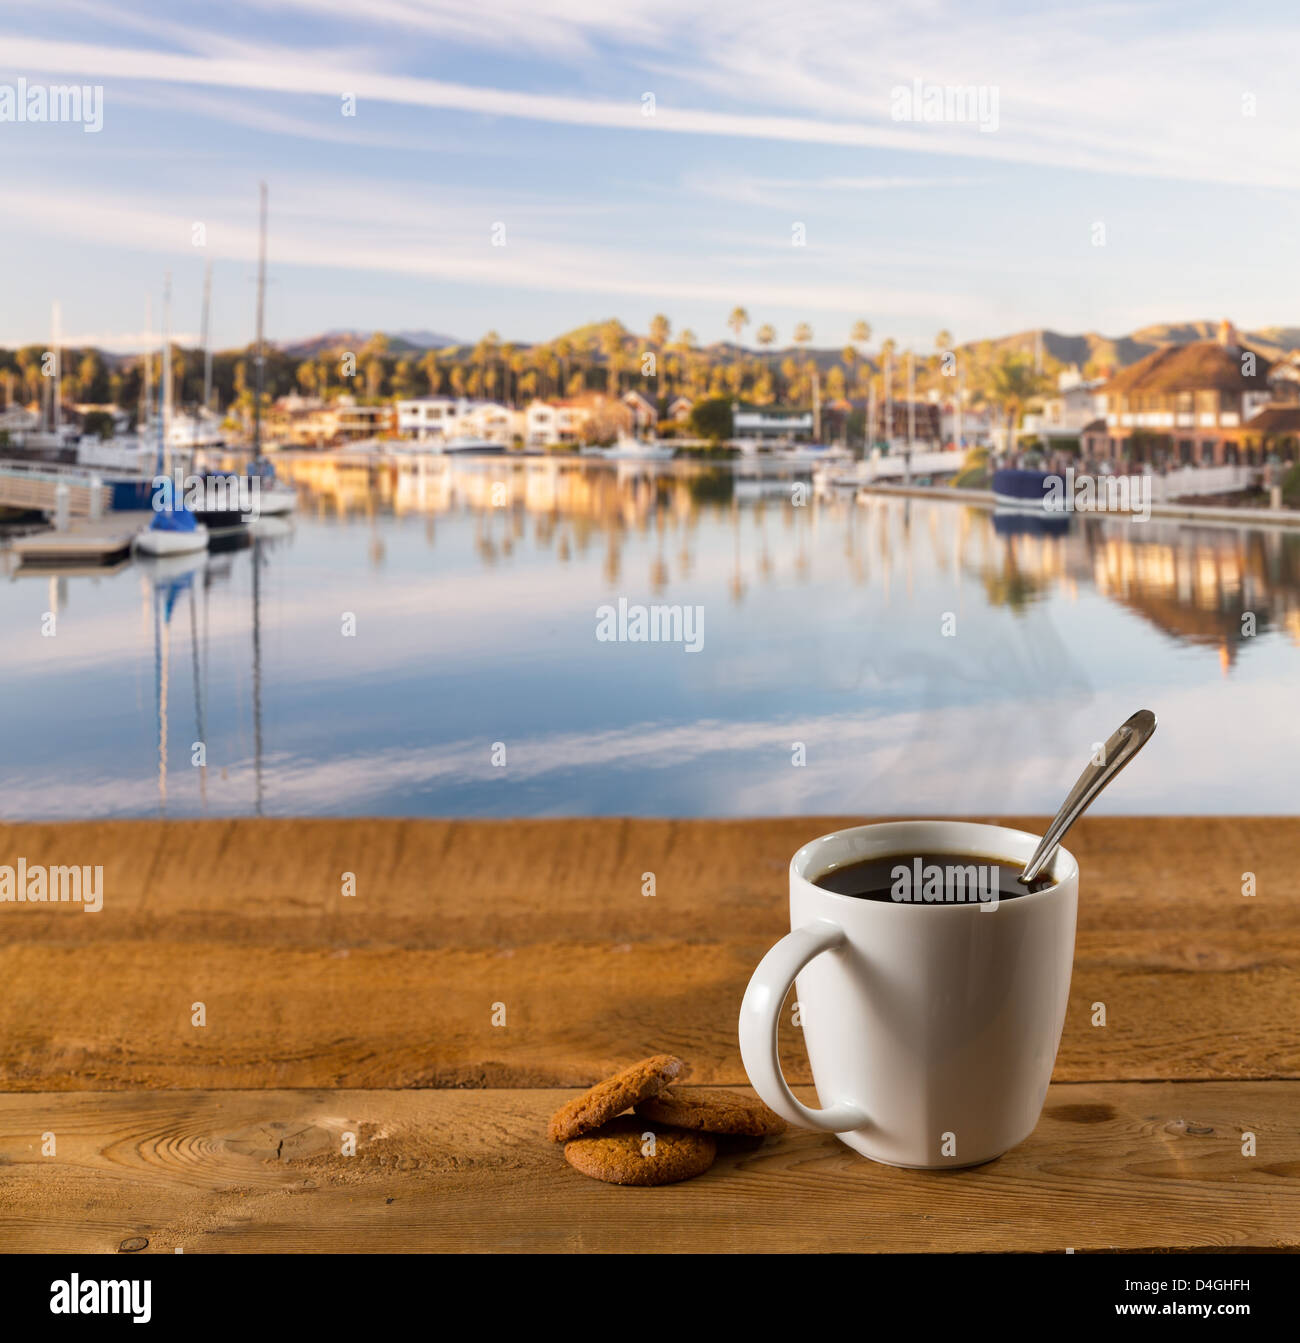 Coffee and biscuits on a wooden table outside - Stock Image